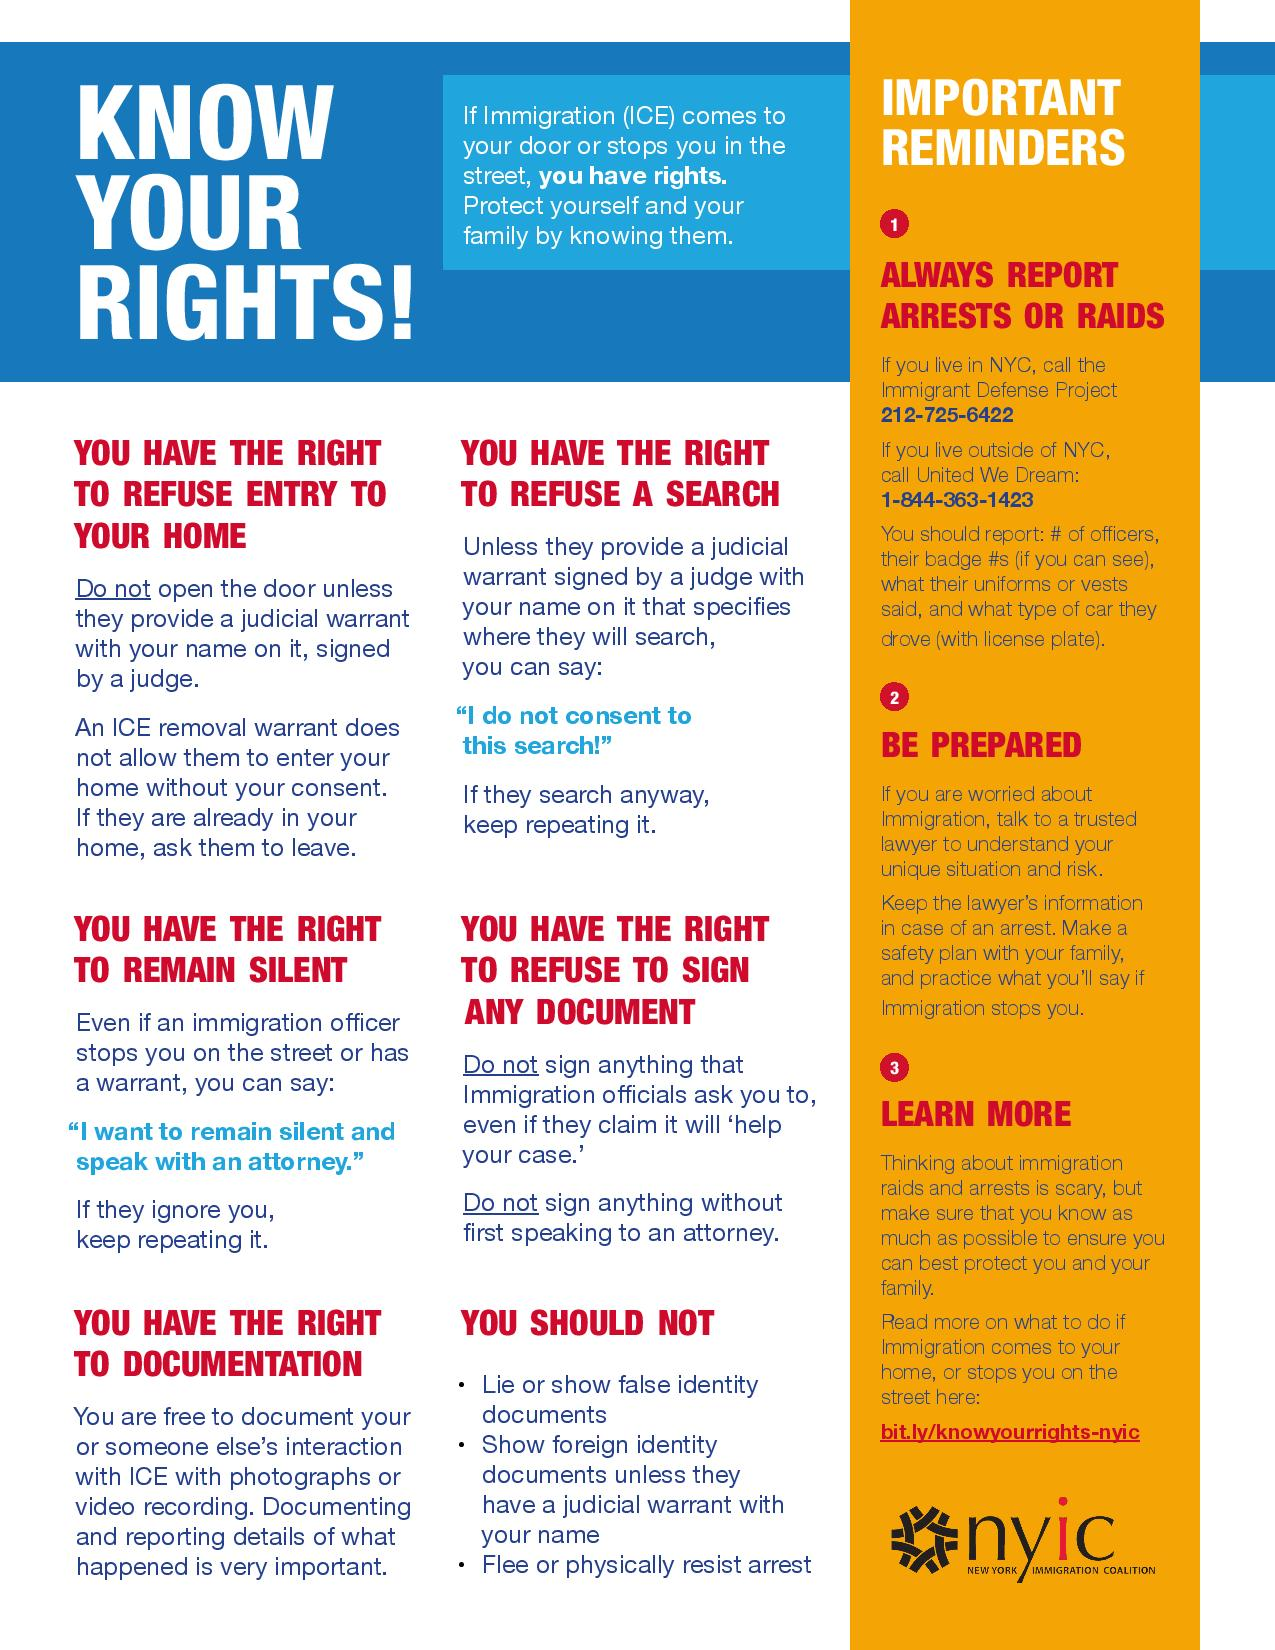 NYIC's Know Your Rights graphic